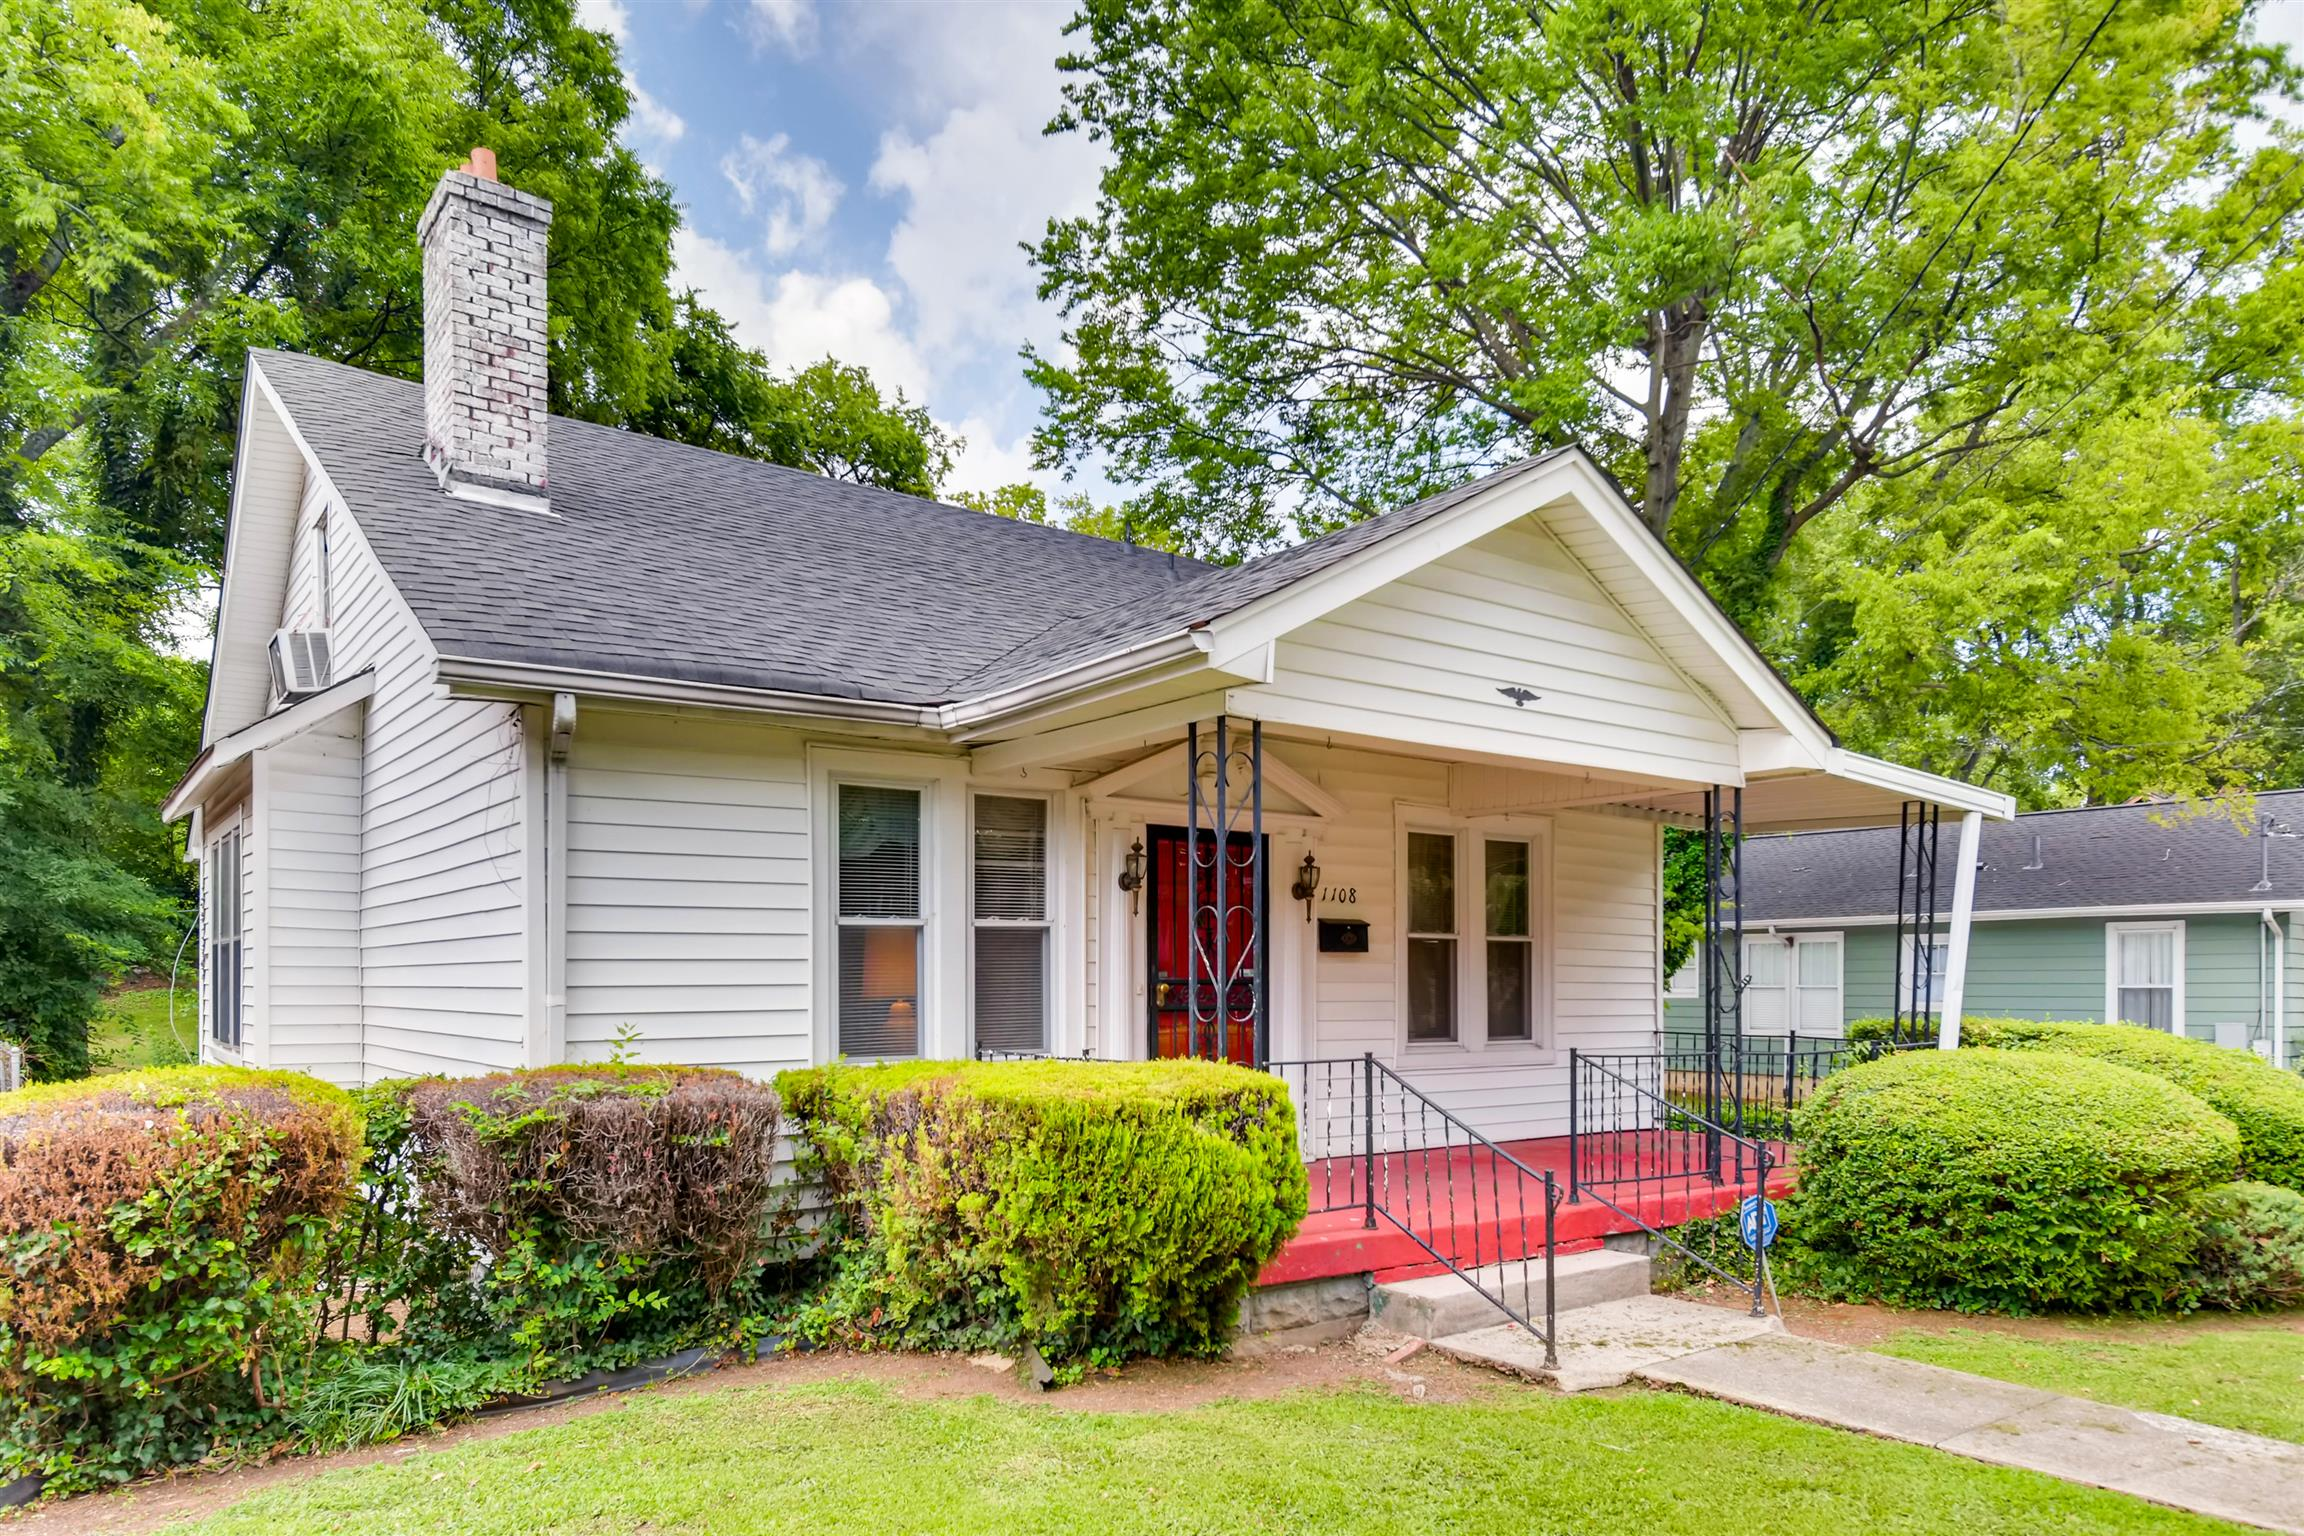 1108 S Douglas Ave, Nashville, TN 37204 - Nashville, TN real estate listing